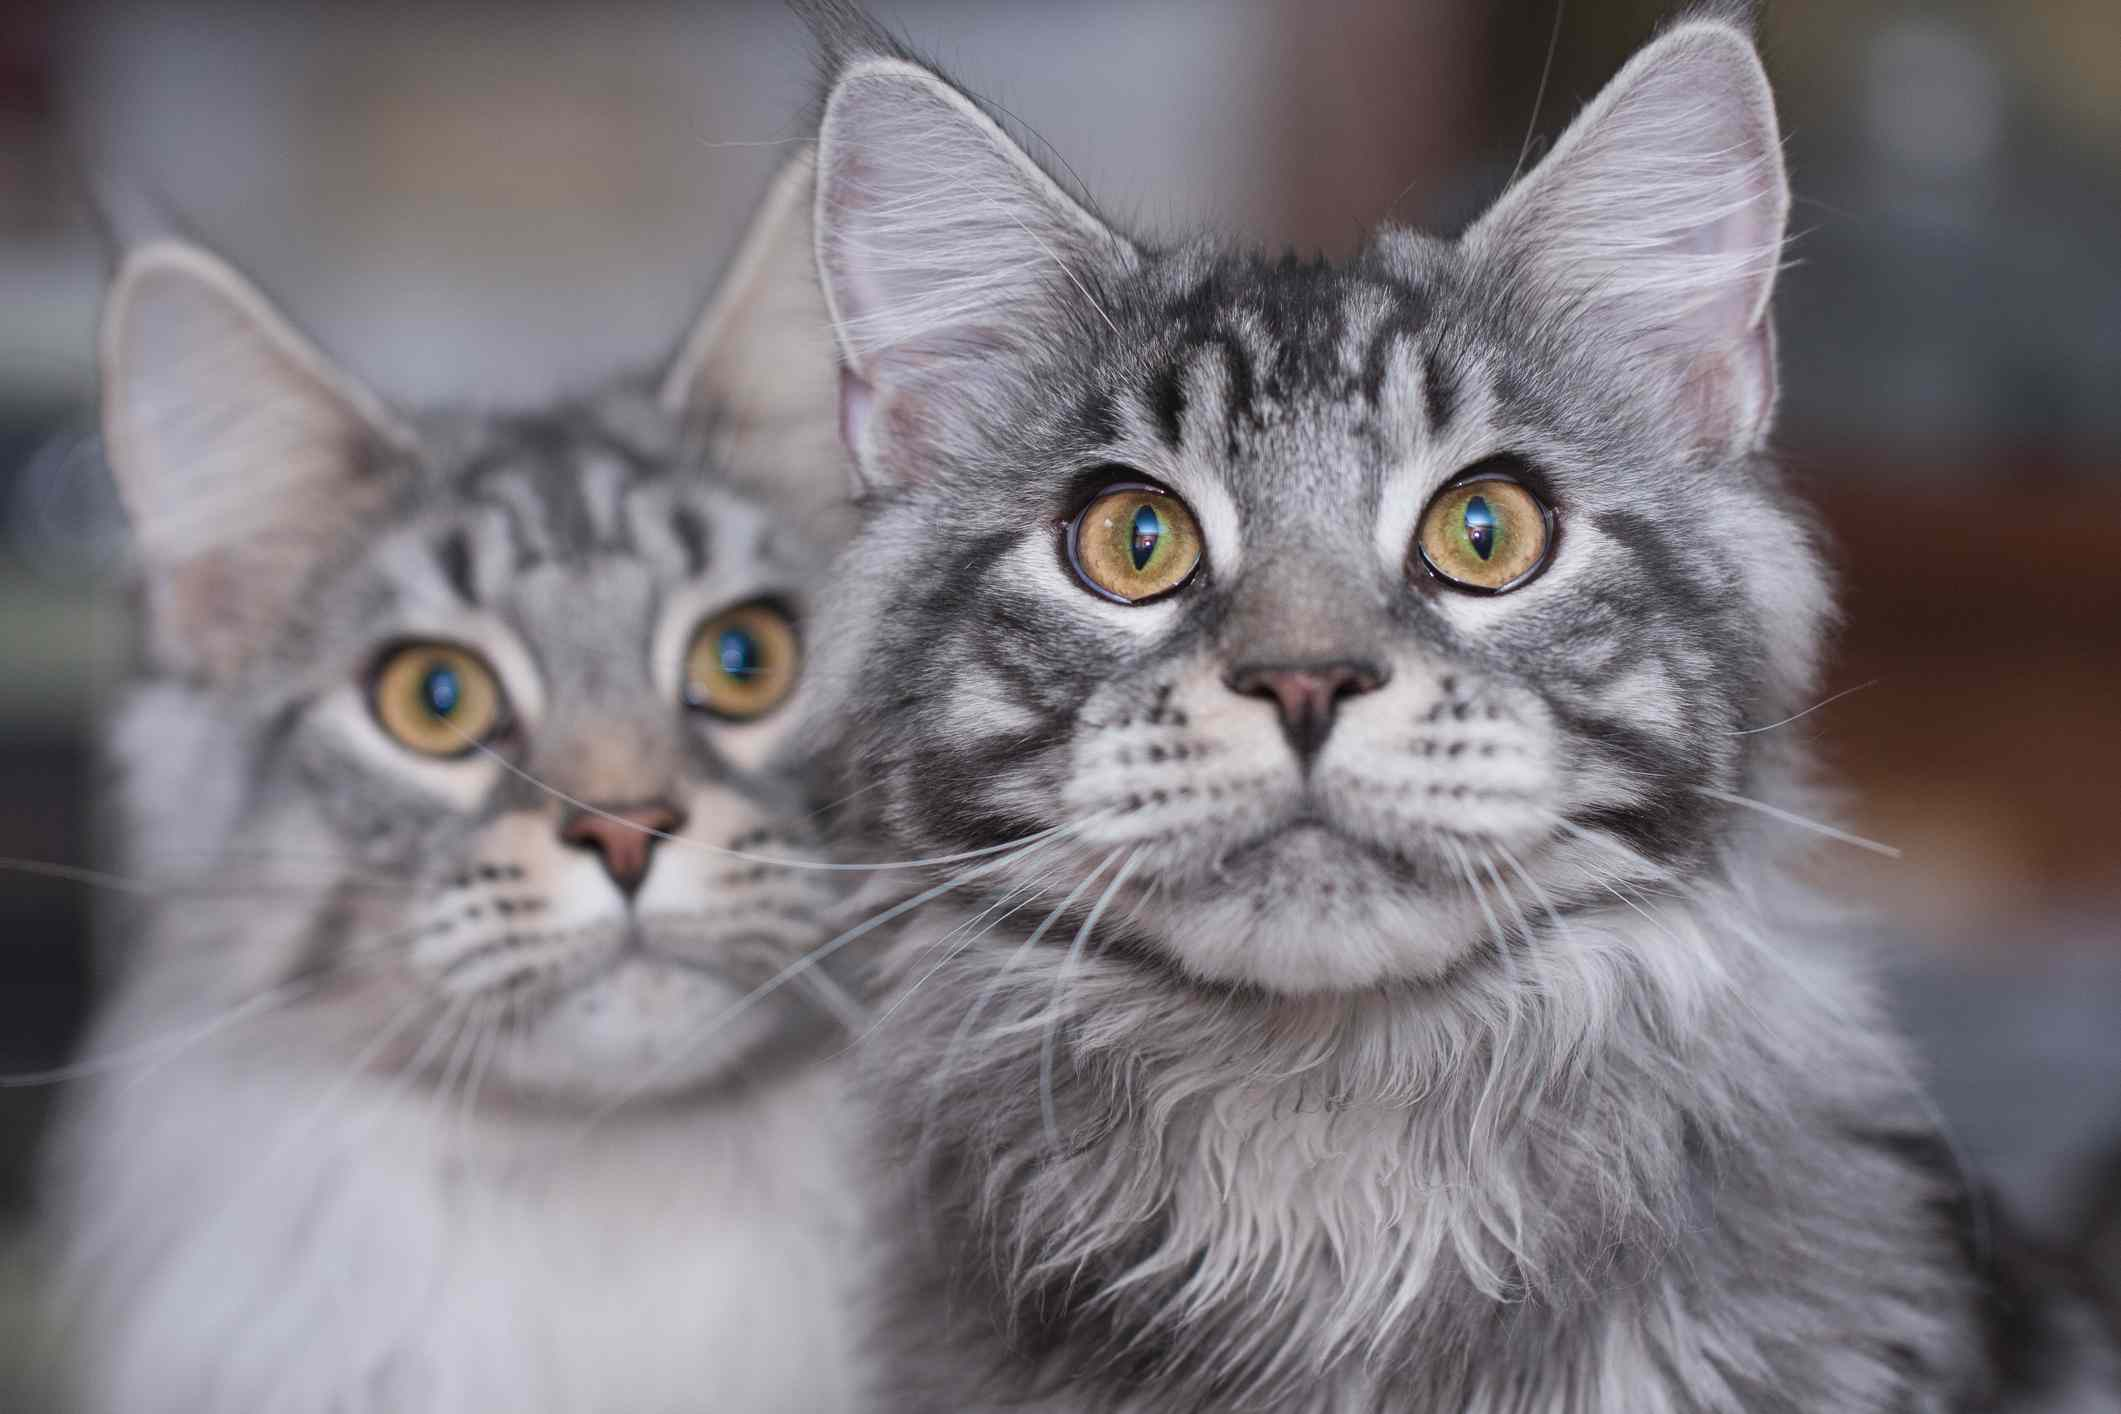 Two Maine Coon cats looking into the camera.